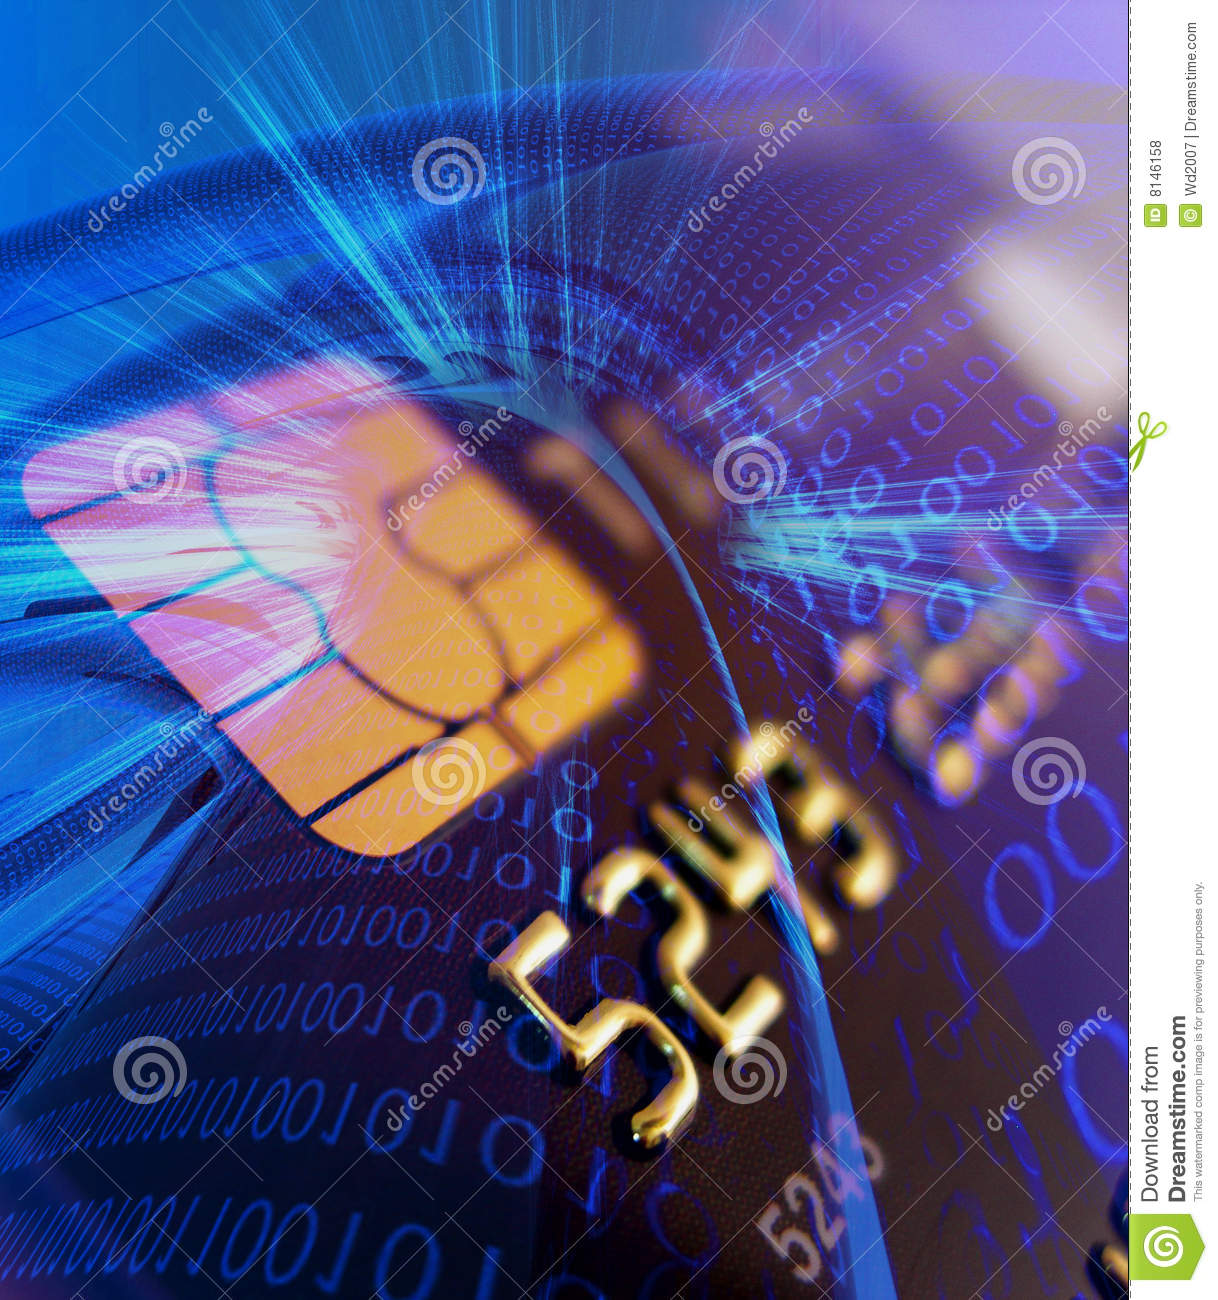 Credit card with secure chip